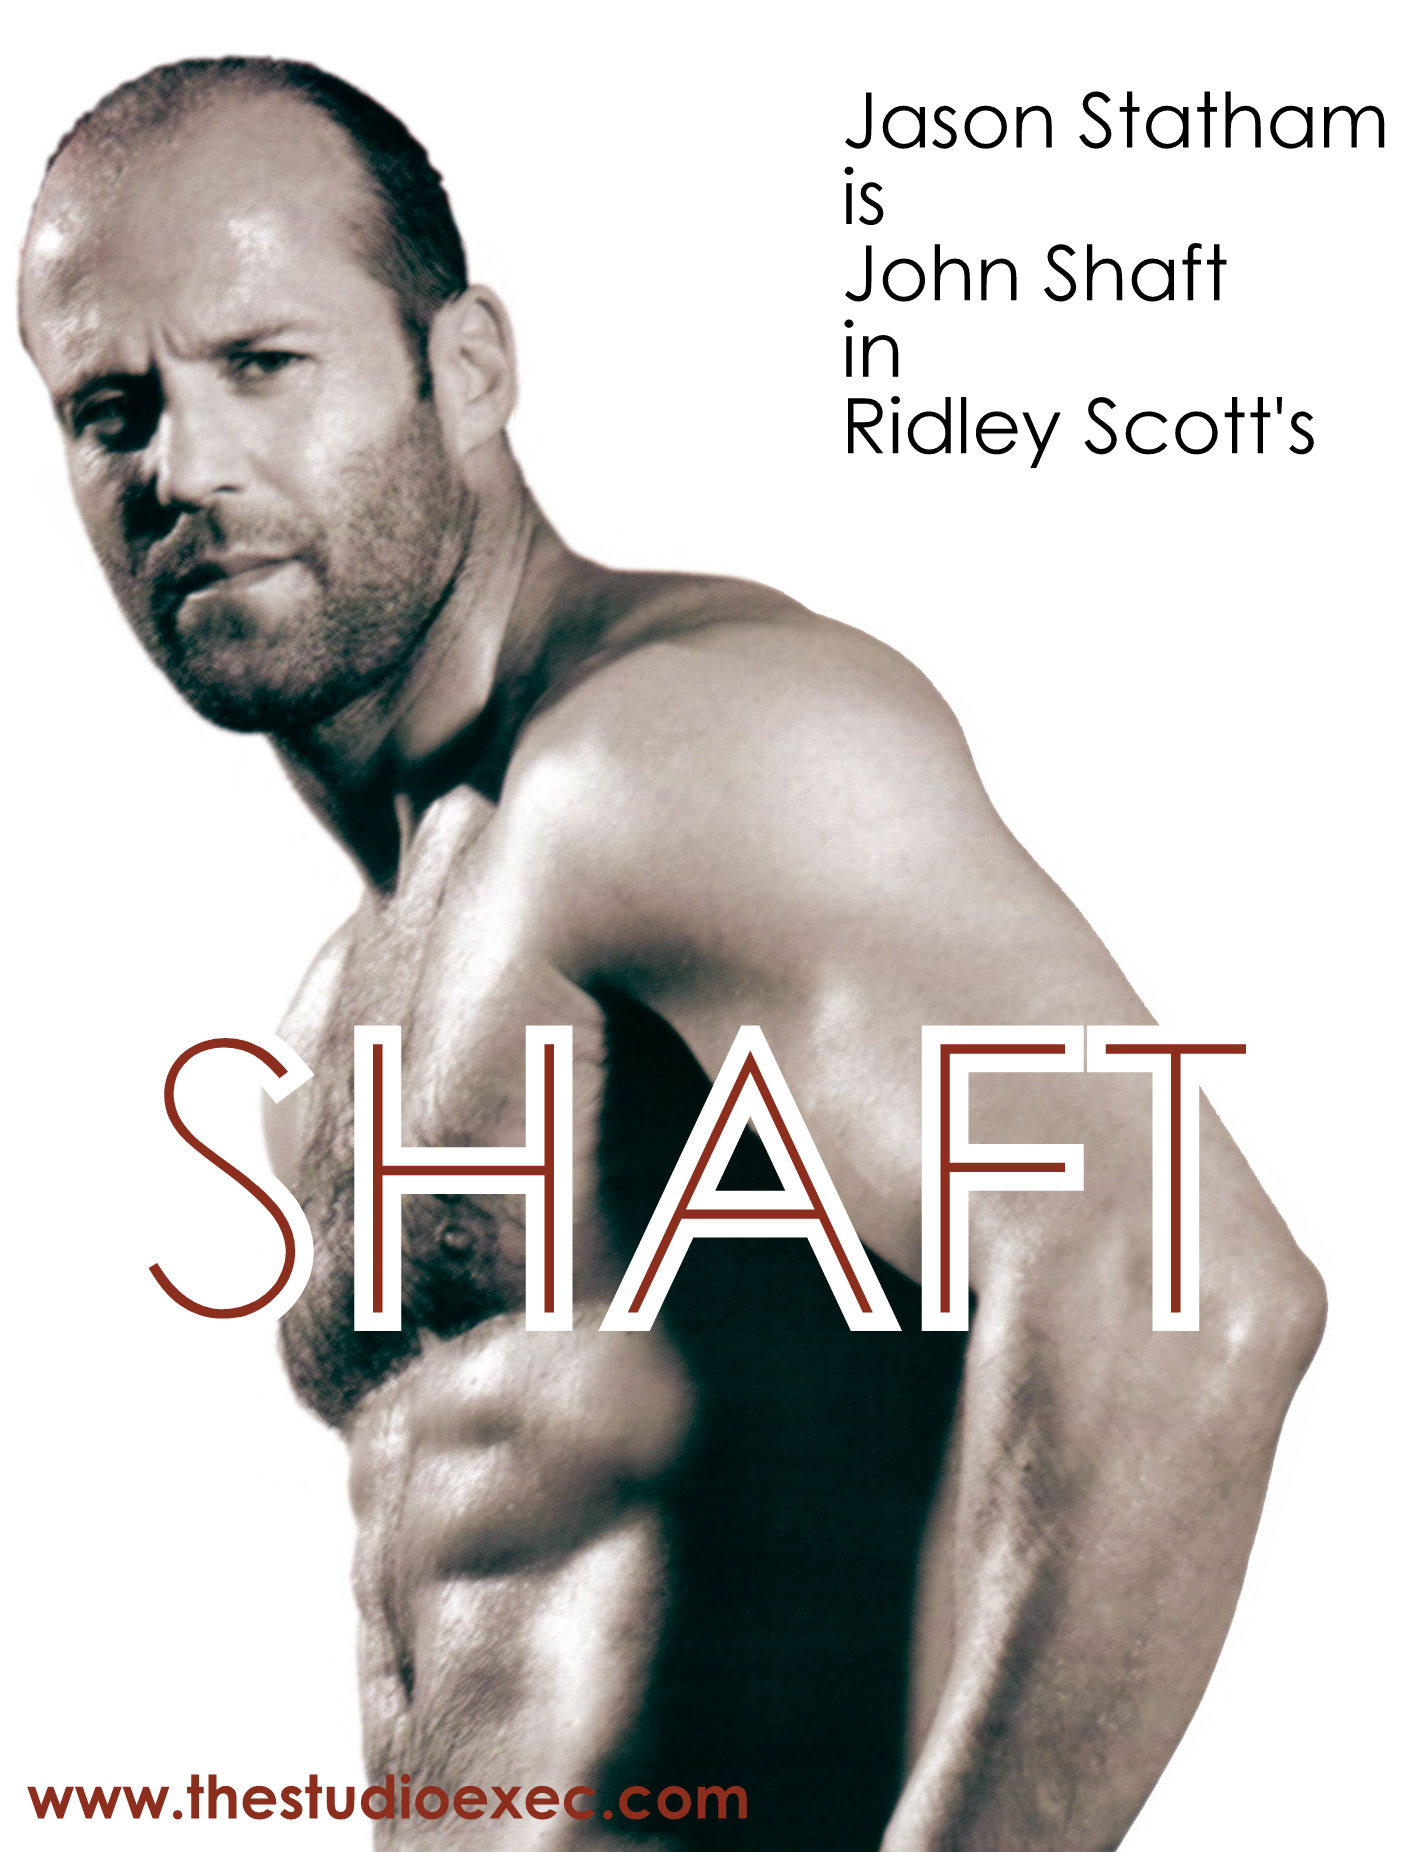 SNEAK PEEK AT RIDLEY SCOTT'S SHAFT